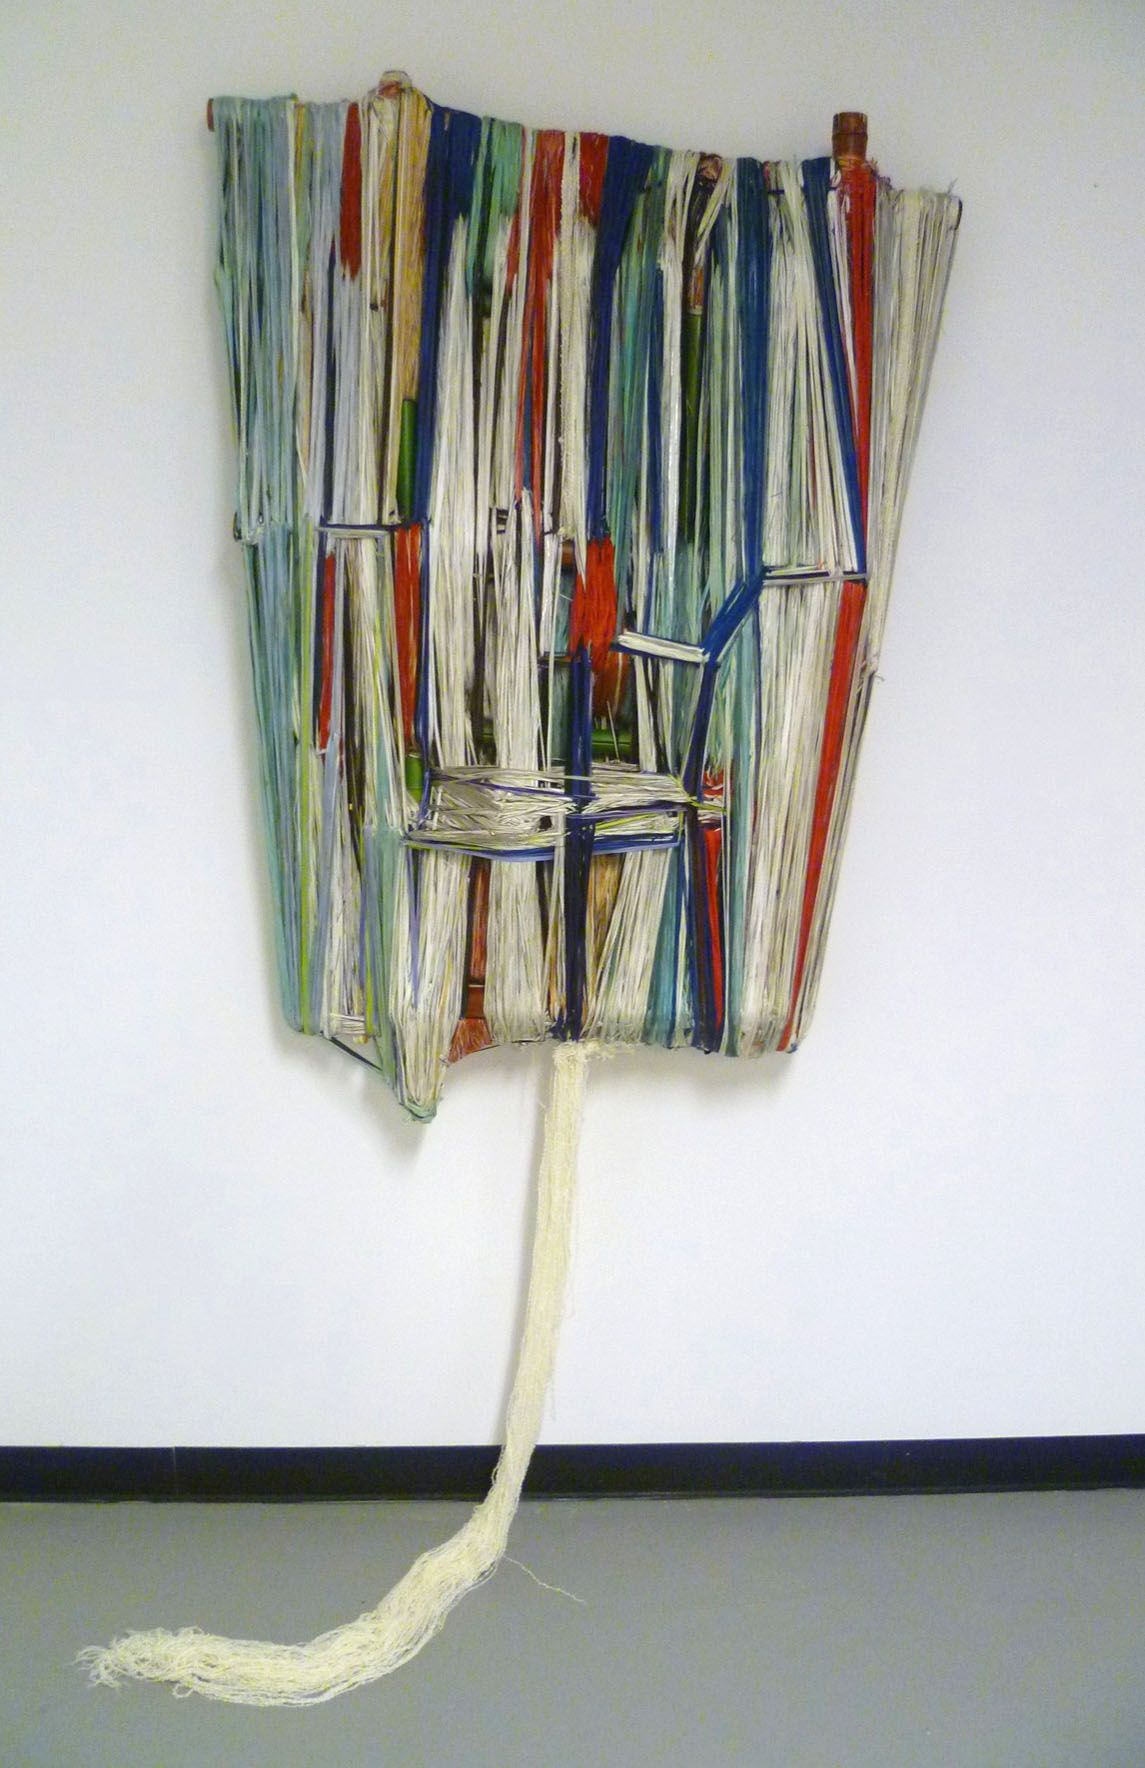 Marroquin Ruben Contemporary Art-wrapped sculpture with various dyed yarn